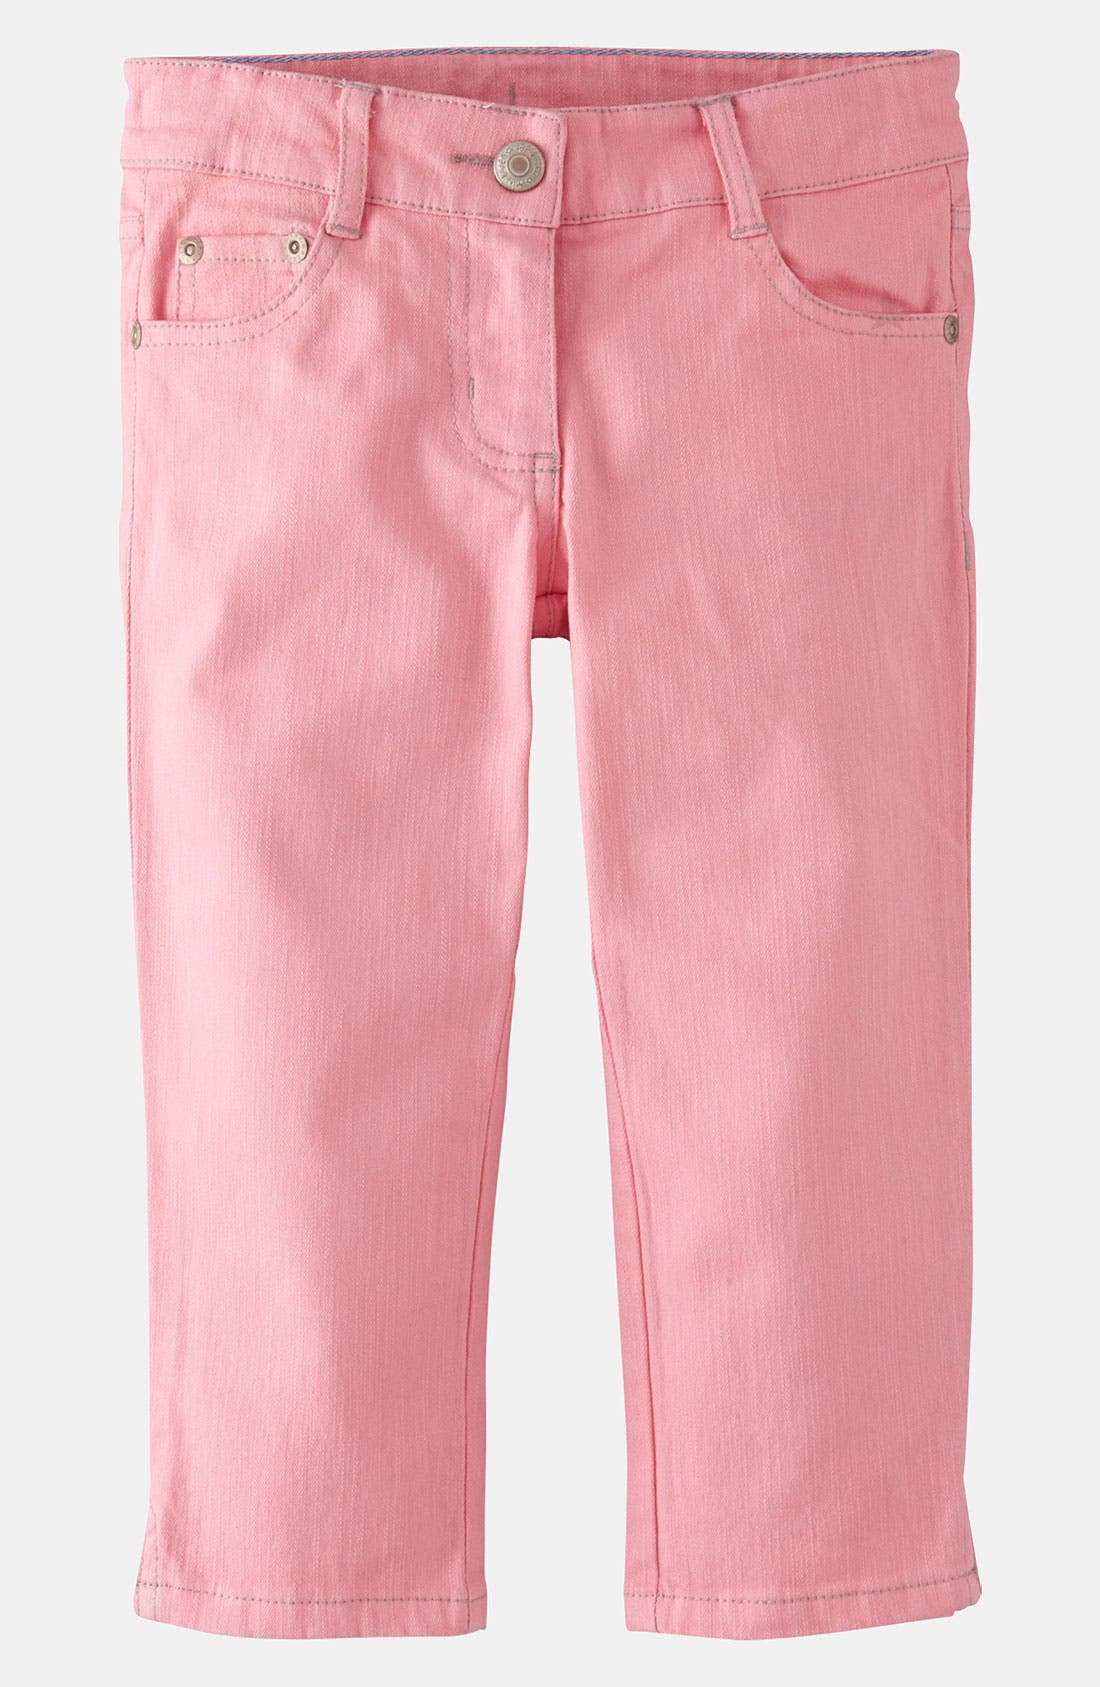 Alternate Image 1 Selected - Mini Boden Capri Pants (Little Girls & Big Girls)